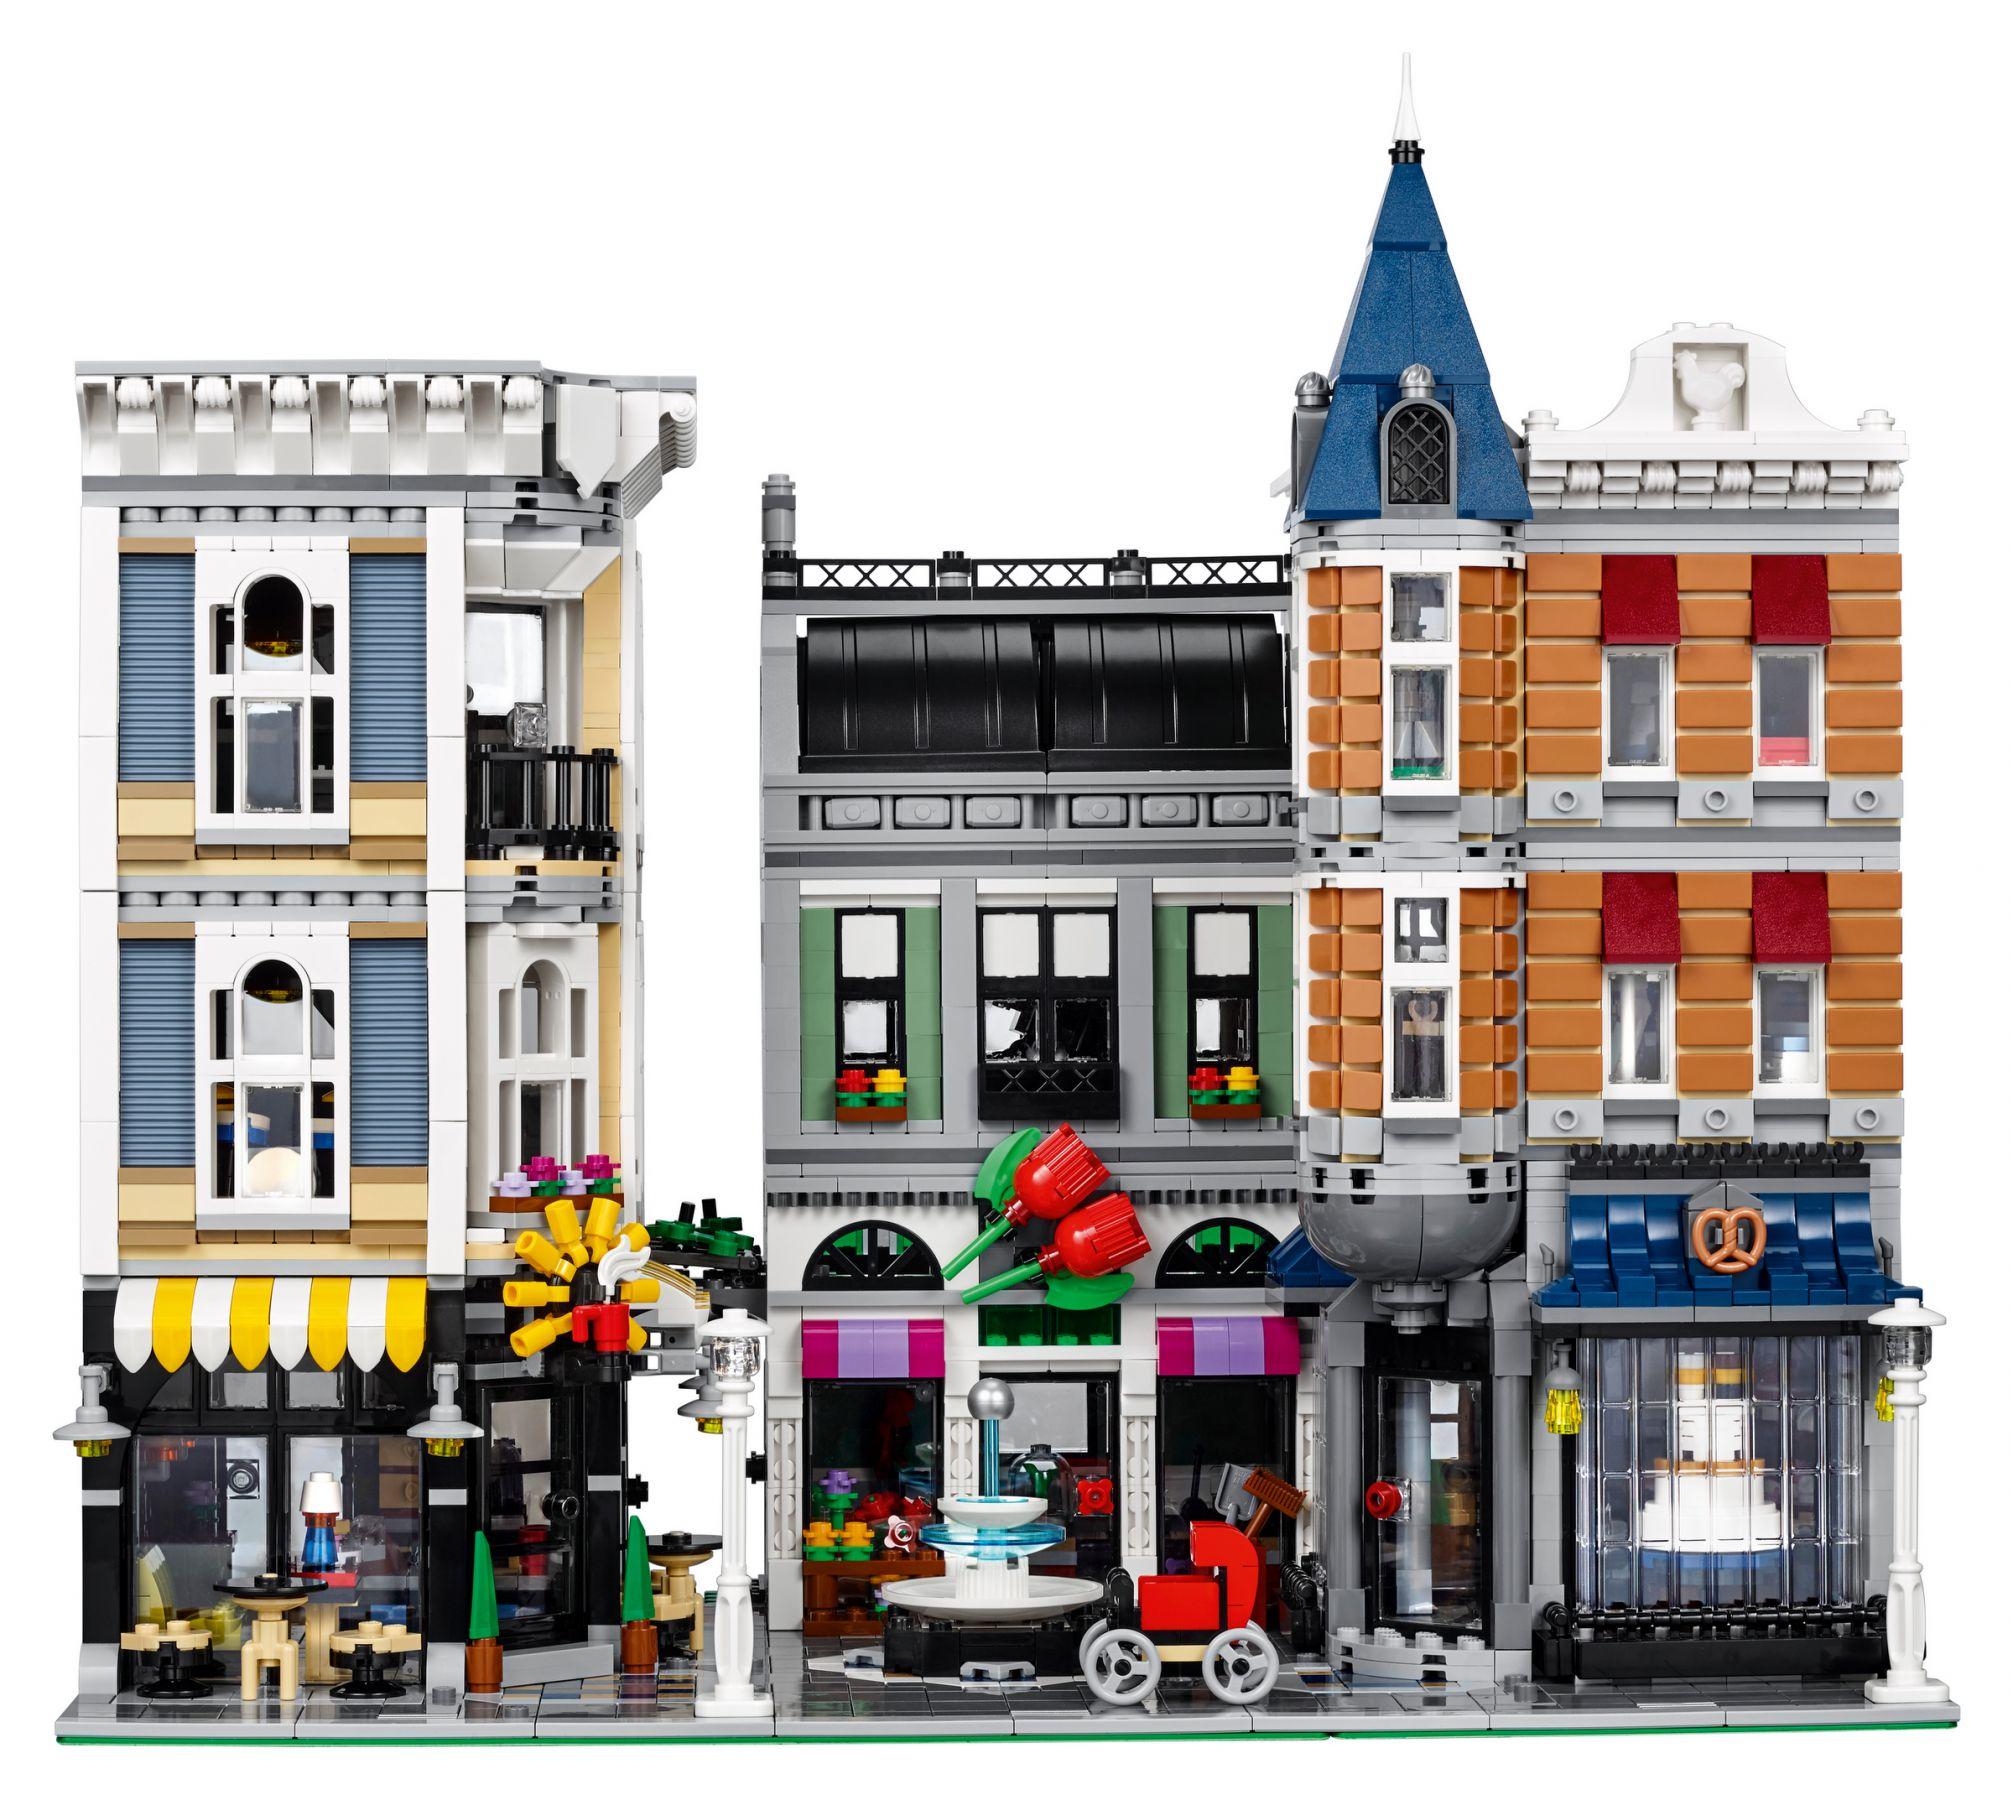 LEGO Advanced Models 10255 Assembly Square / Stadtleben LEGO_10255_alt3.jpg